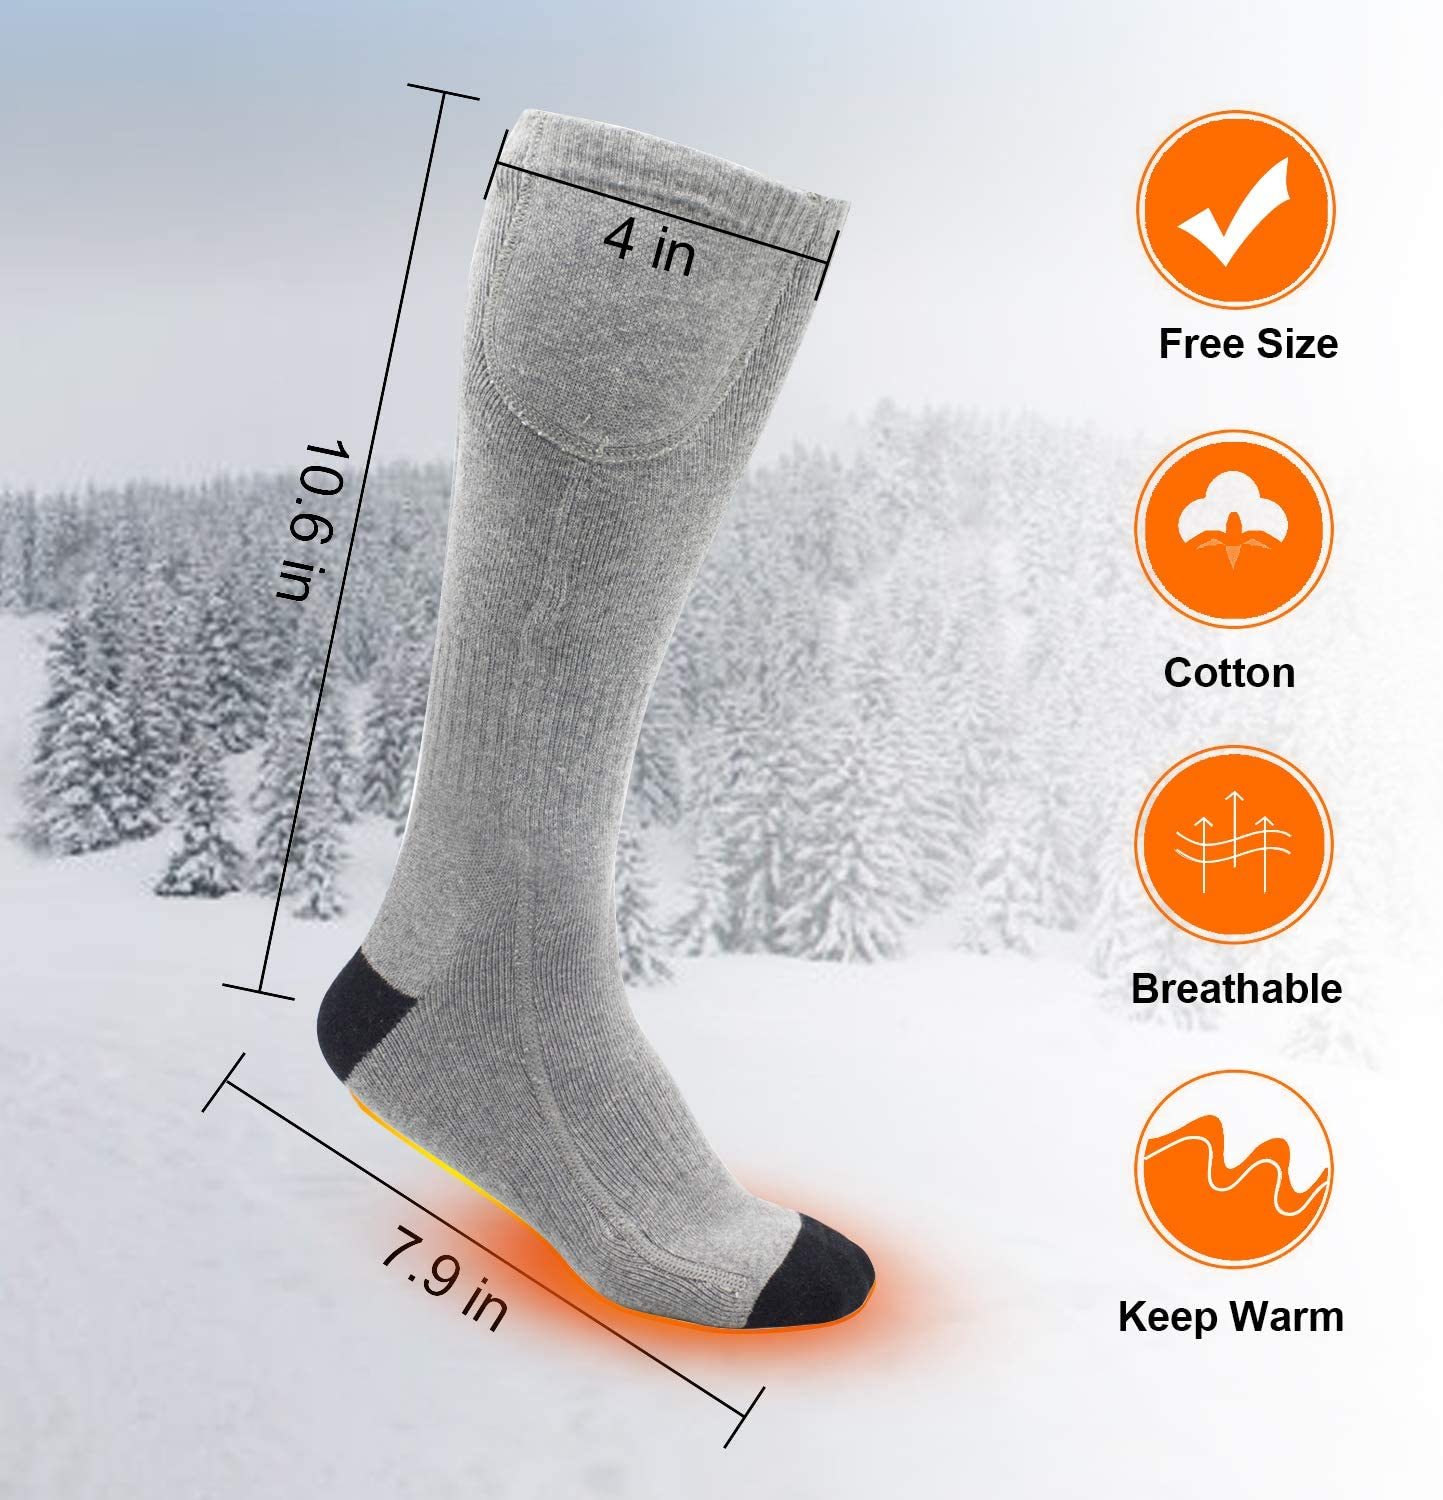 Up to 16 Hours of Heat Gray 2 MUCH Heated Socks for Men//Women-2020 Upgraded Rechargeable Electric Socks